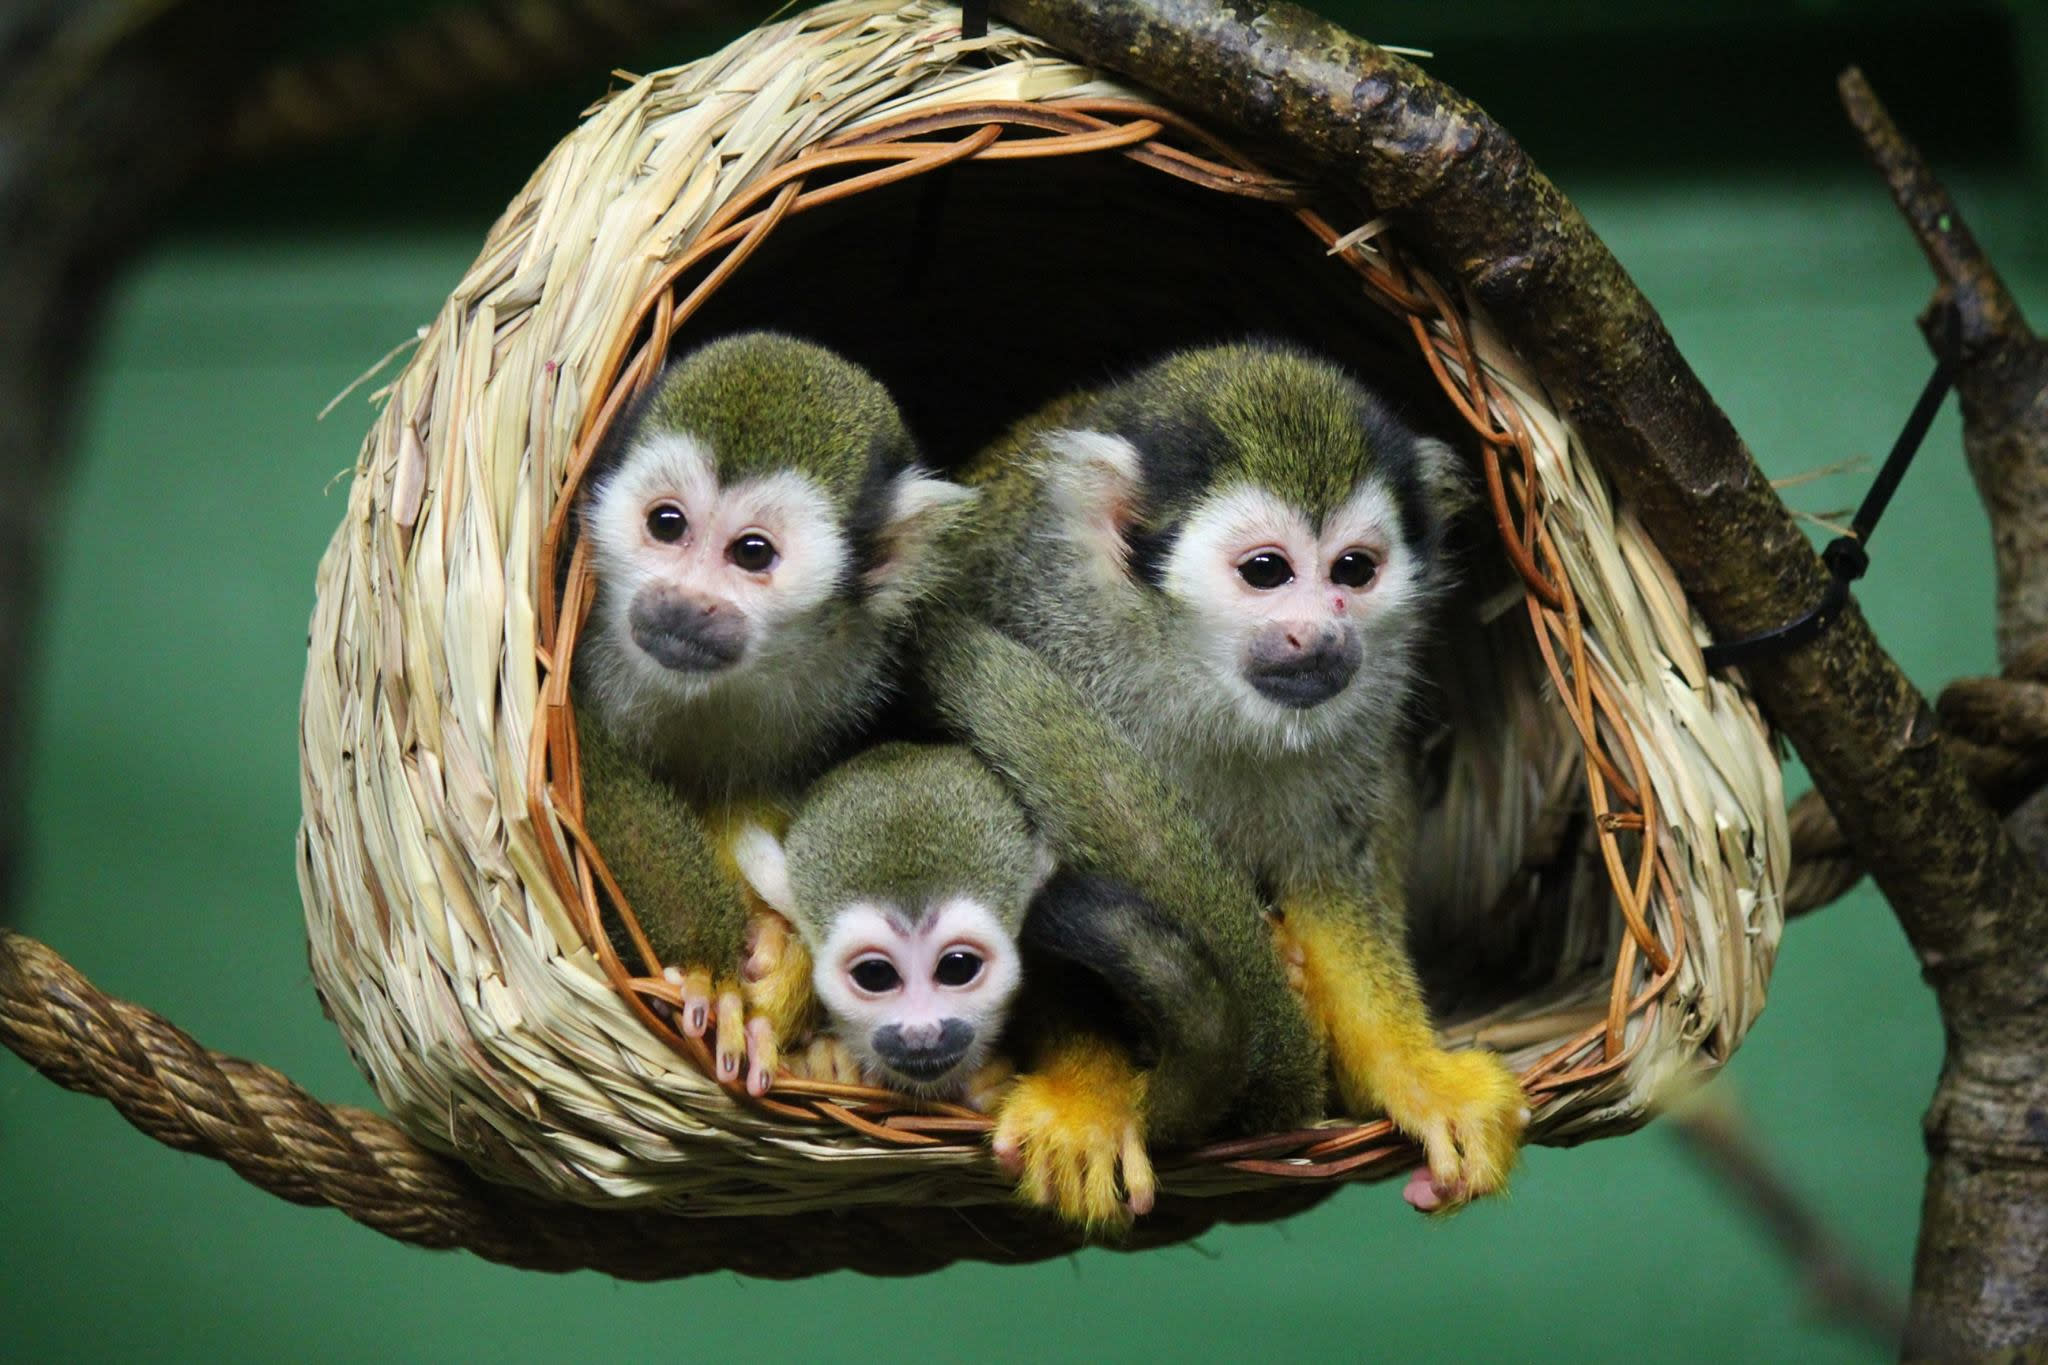 Squirrel Monkeys at the Assiniboine Park Zoo.